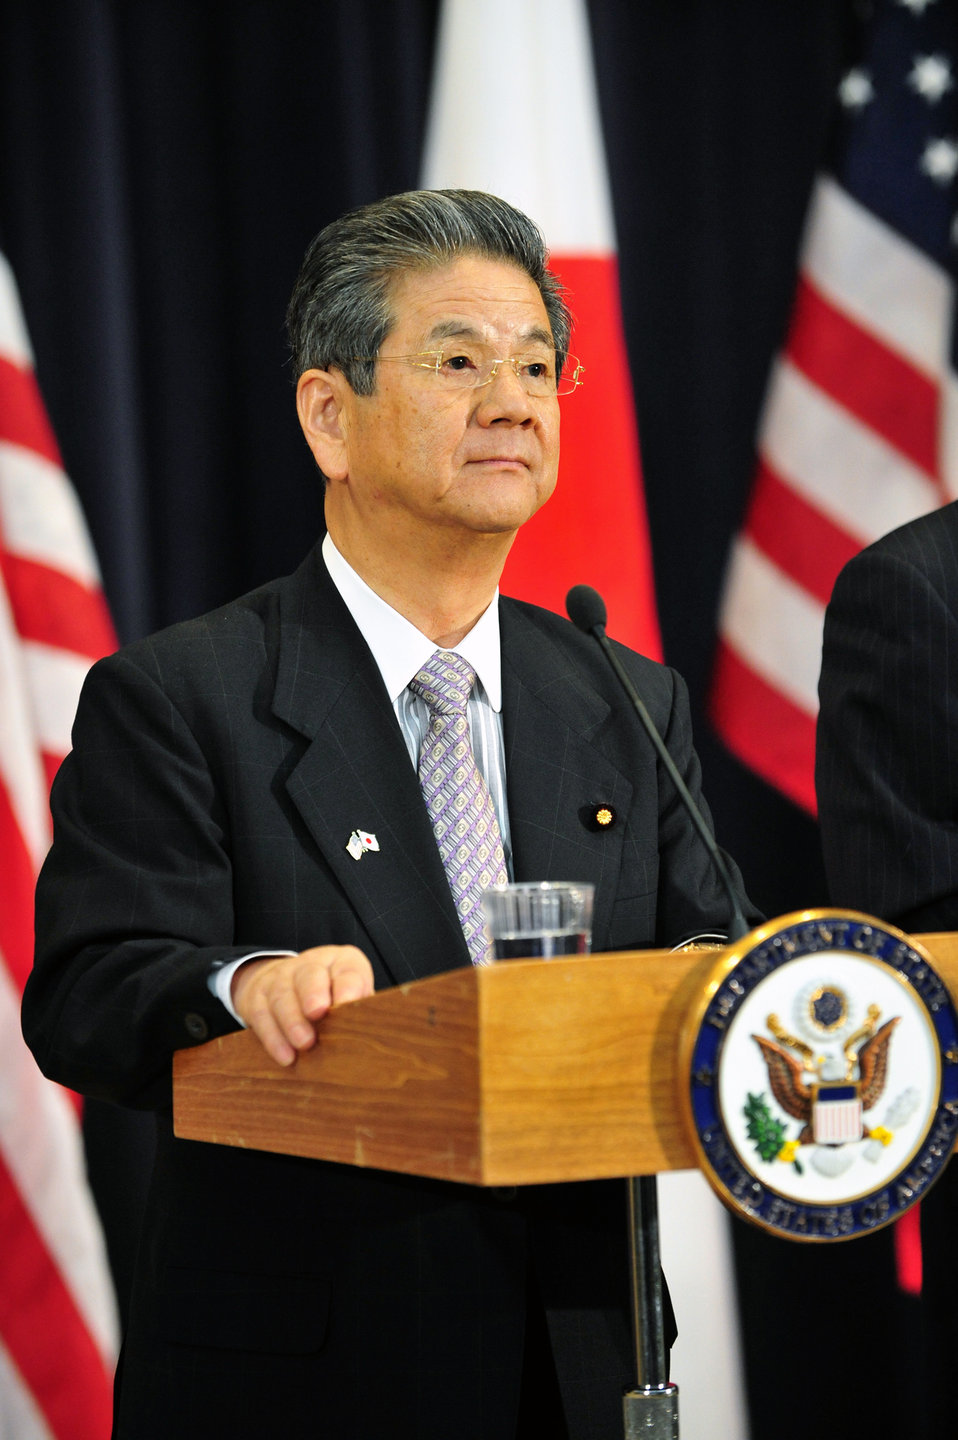 Japanese Defense Minister Kitazawa Delivers Remarks